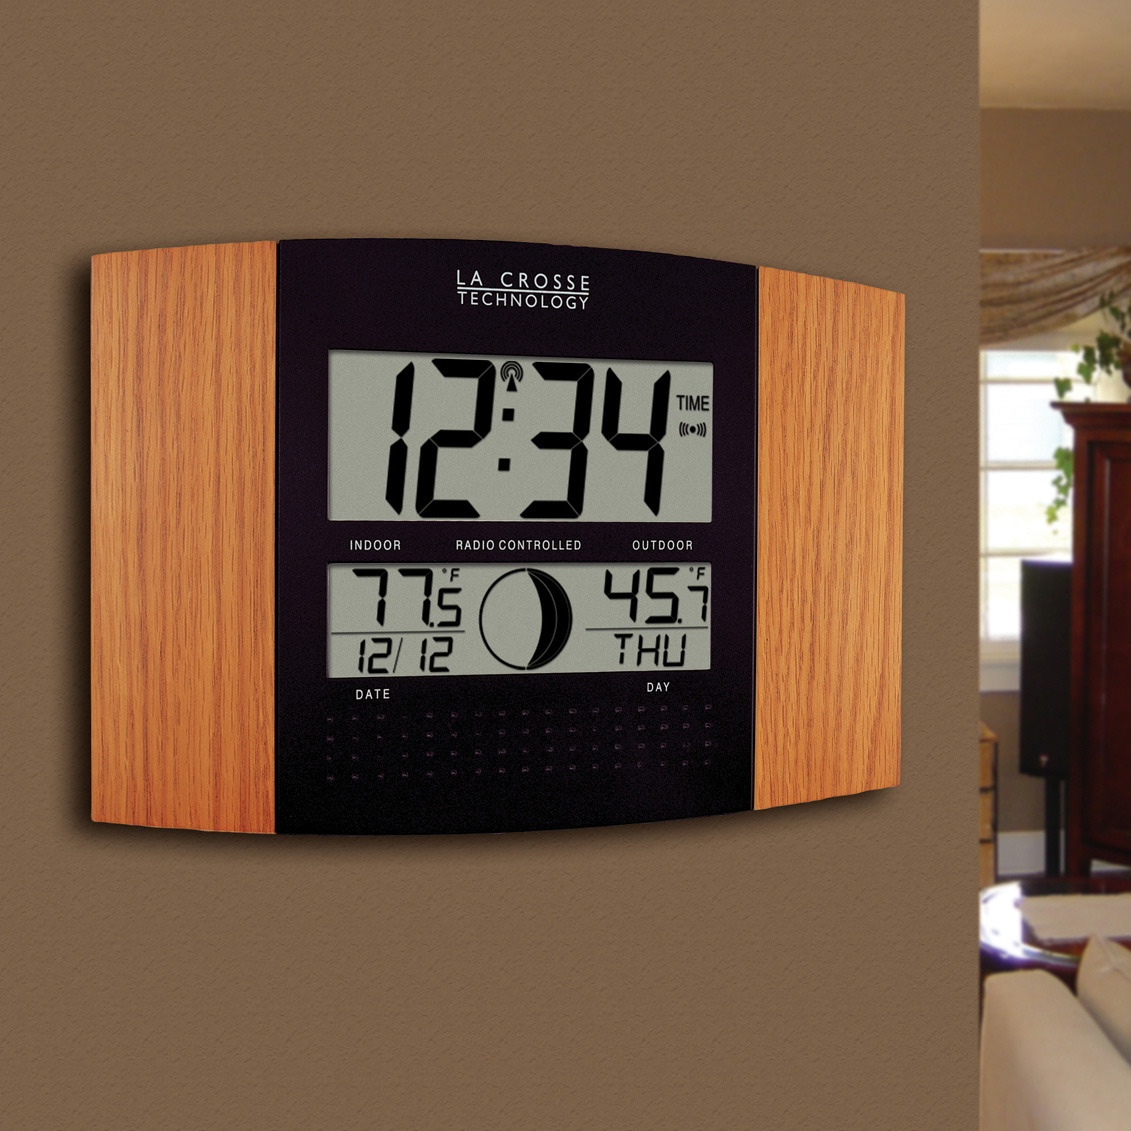 Atomic Wall Clock with Outdoor Temperature by La Crosse 122